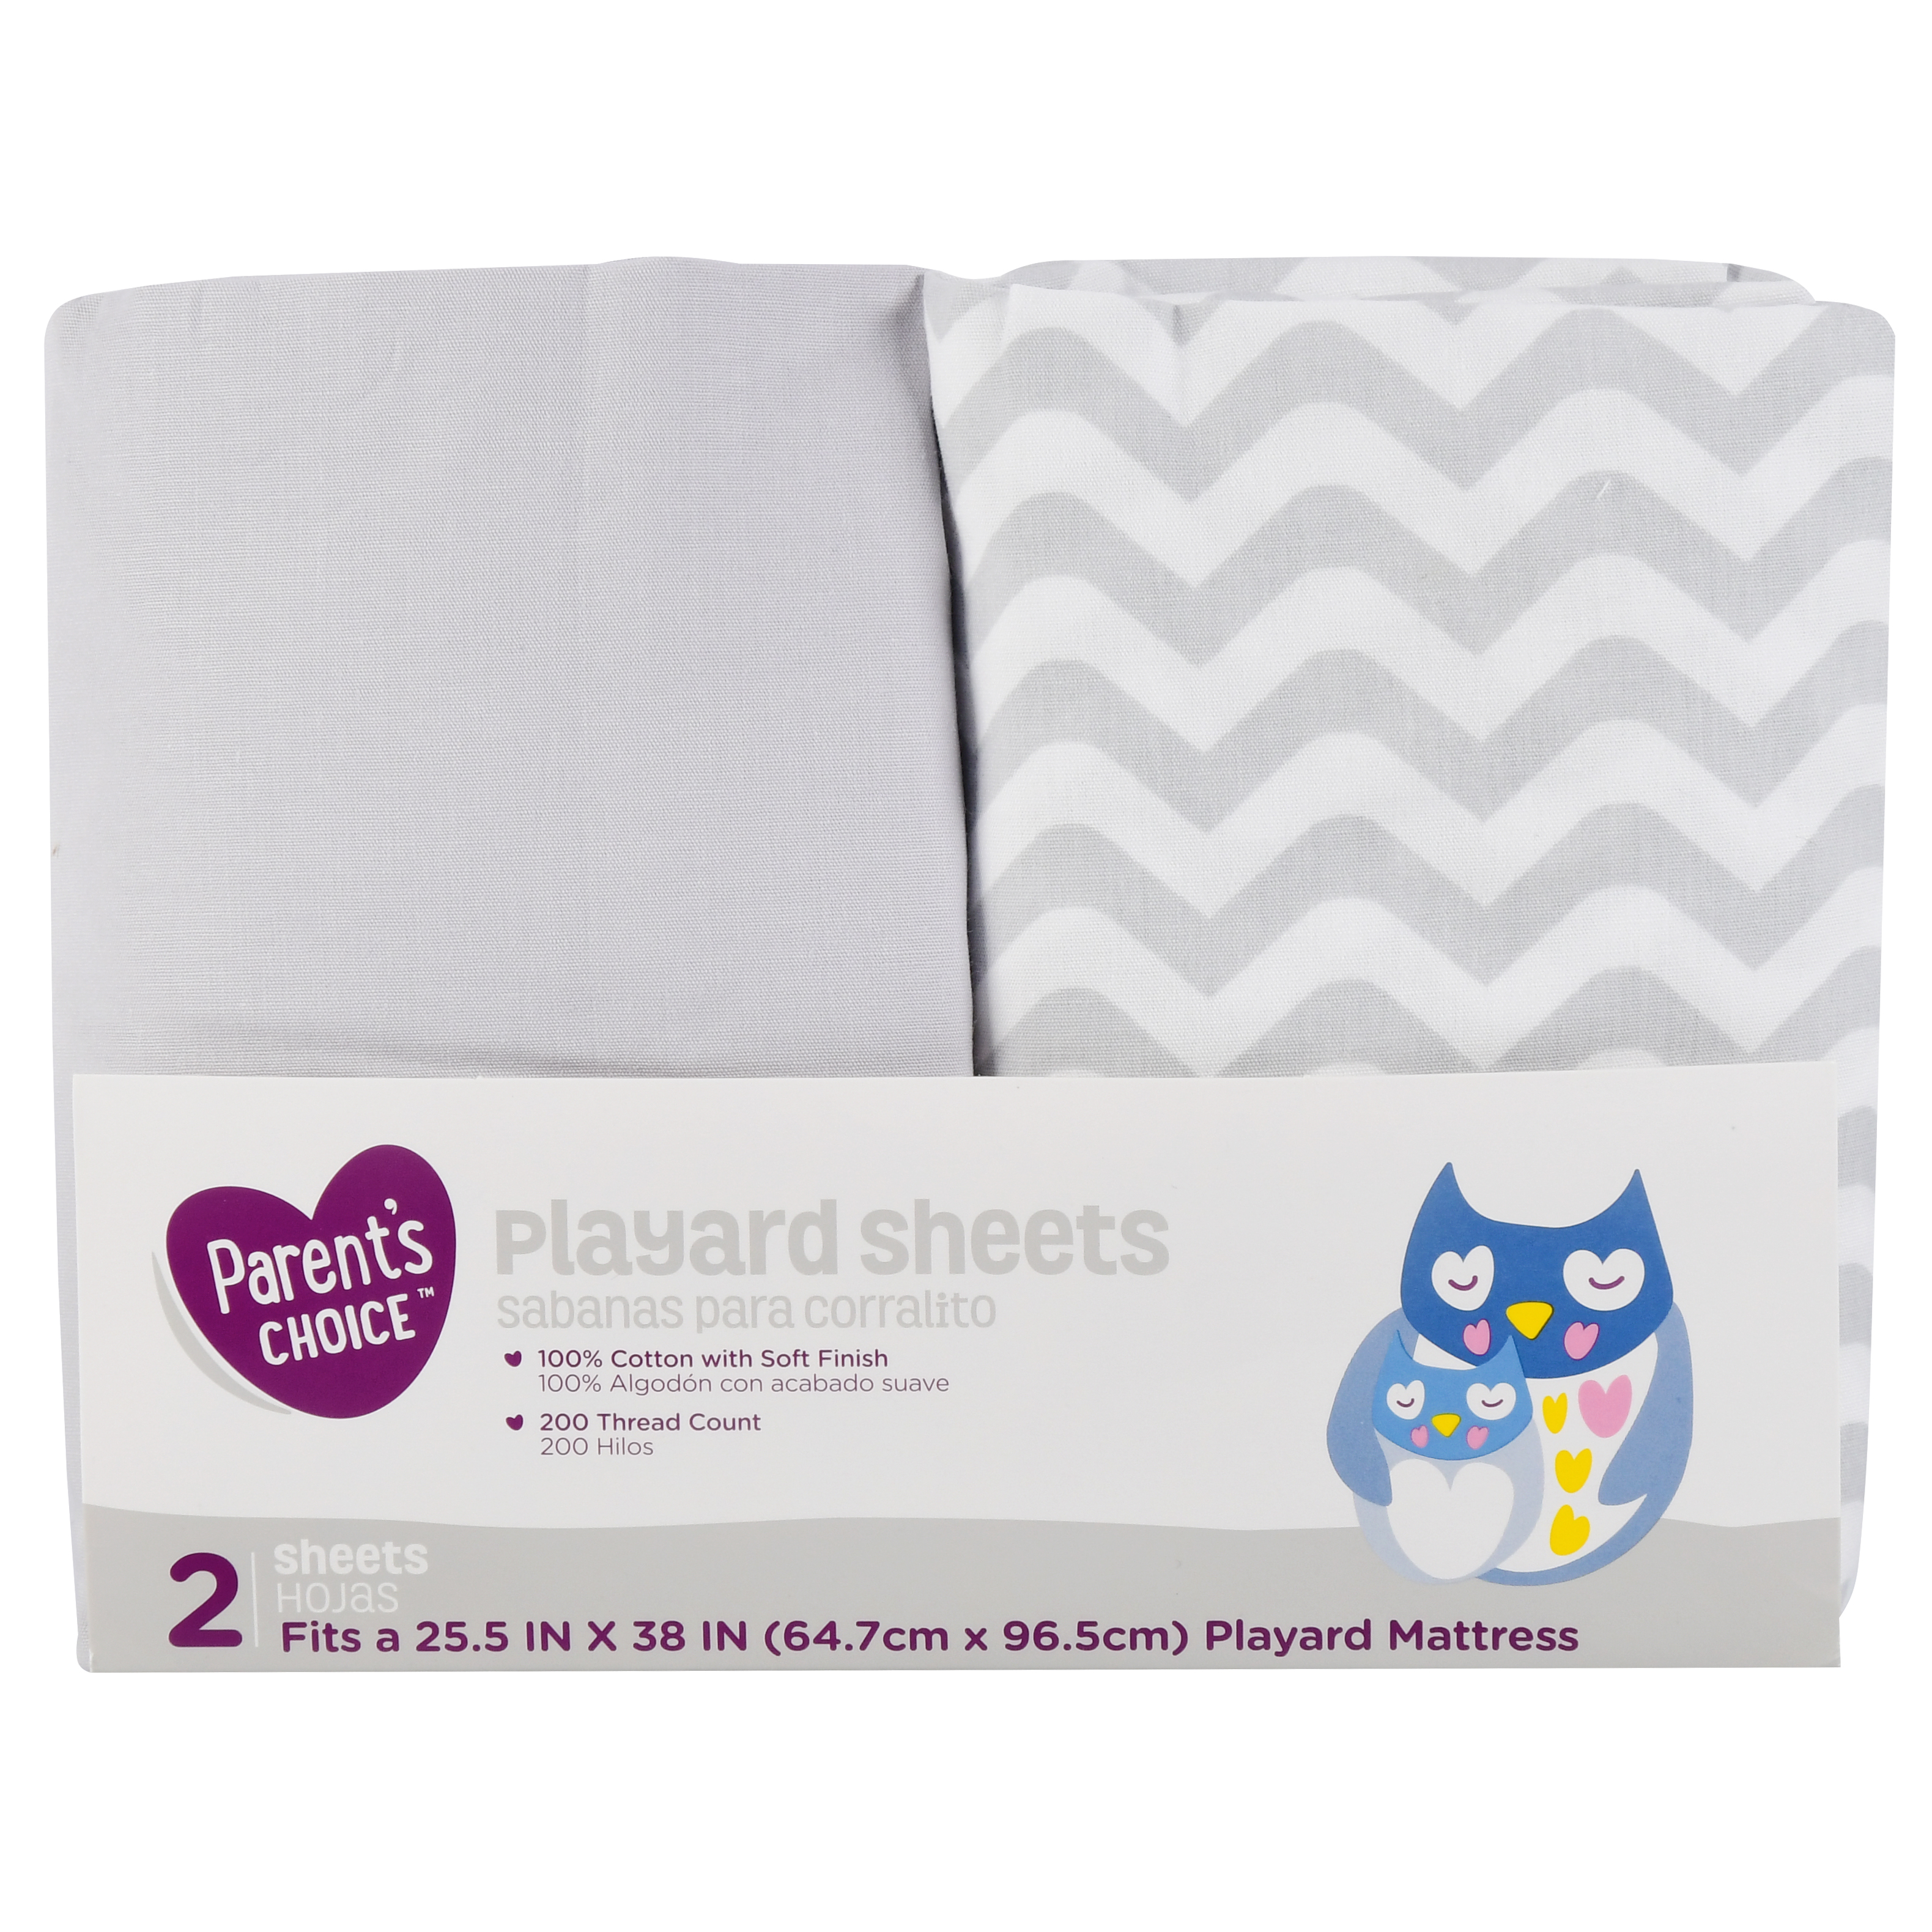 Parent's Choice Playard Crib Sheets, Neutral, 2 Count